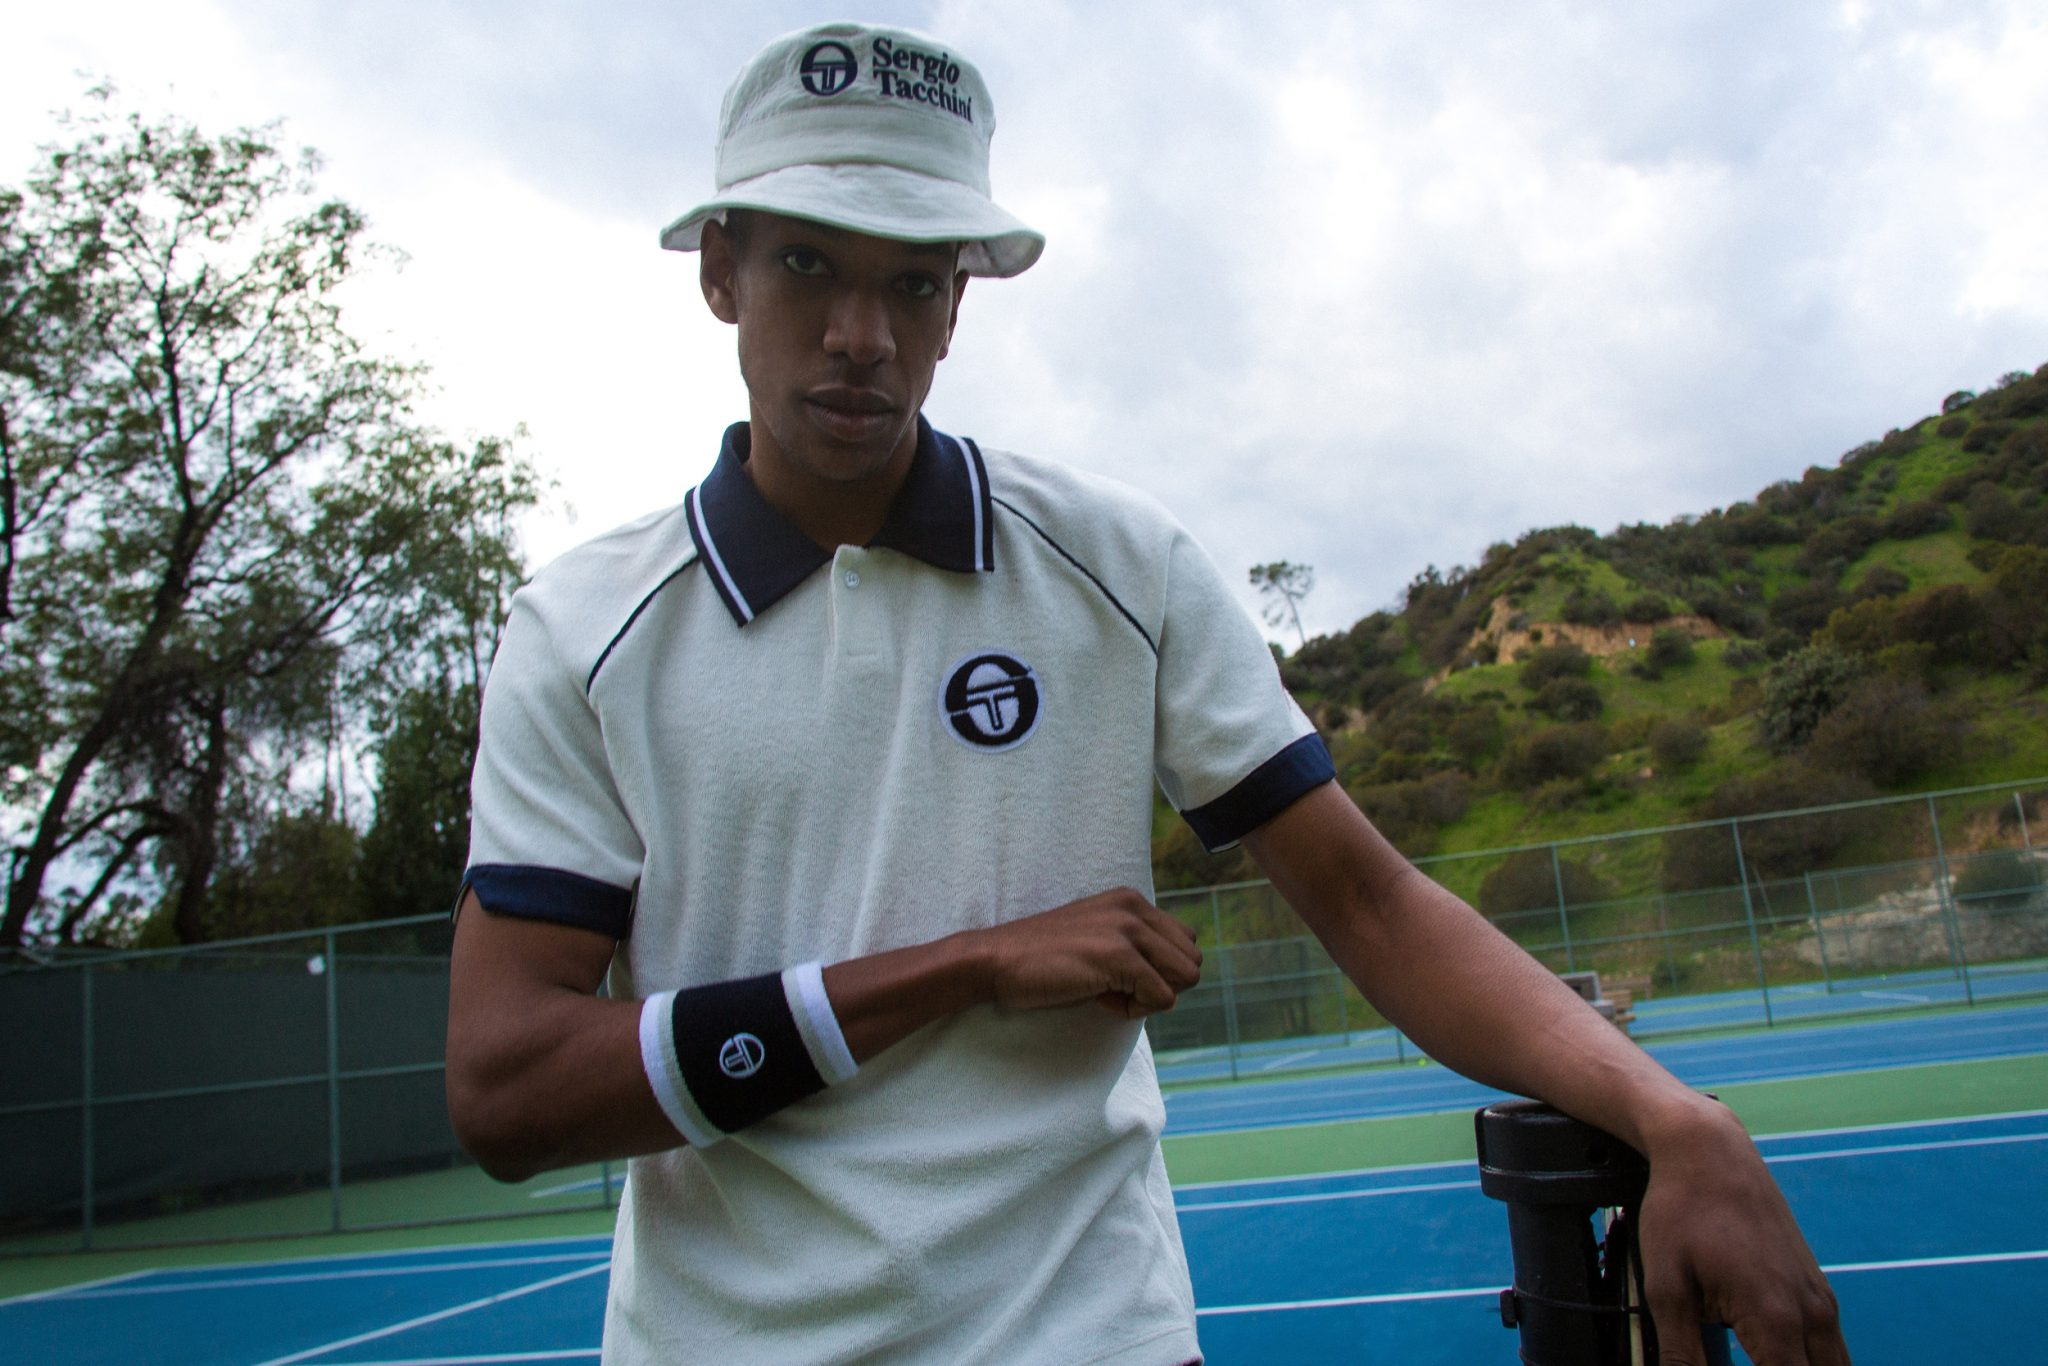 Sergio tacchini STLA collection 3